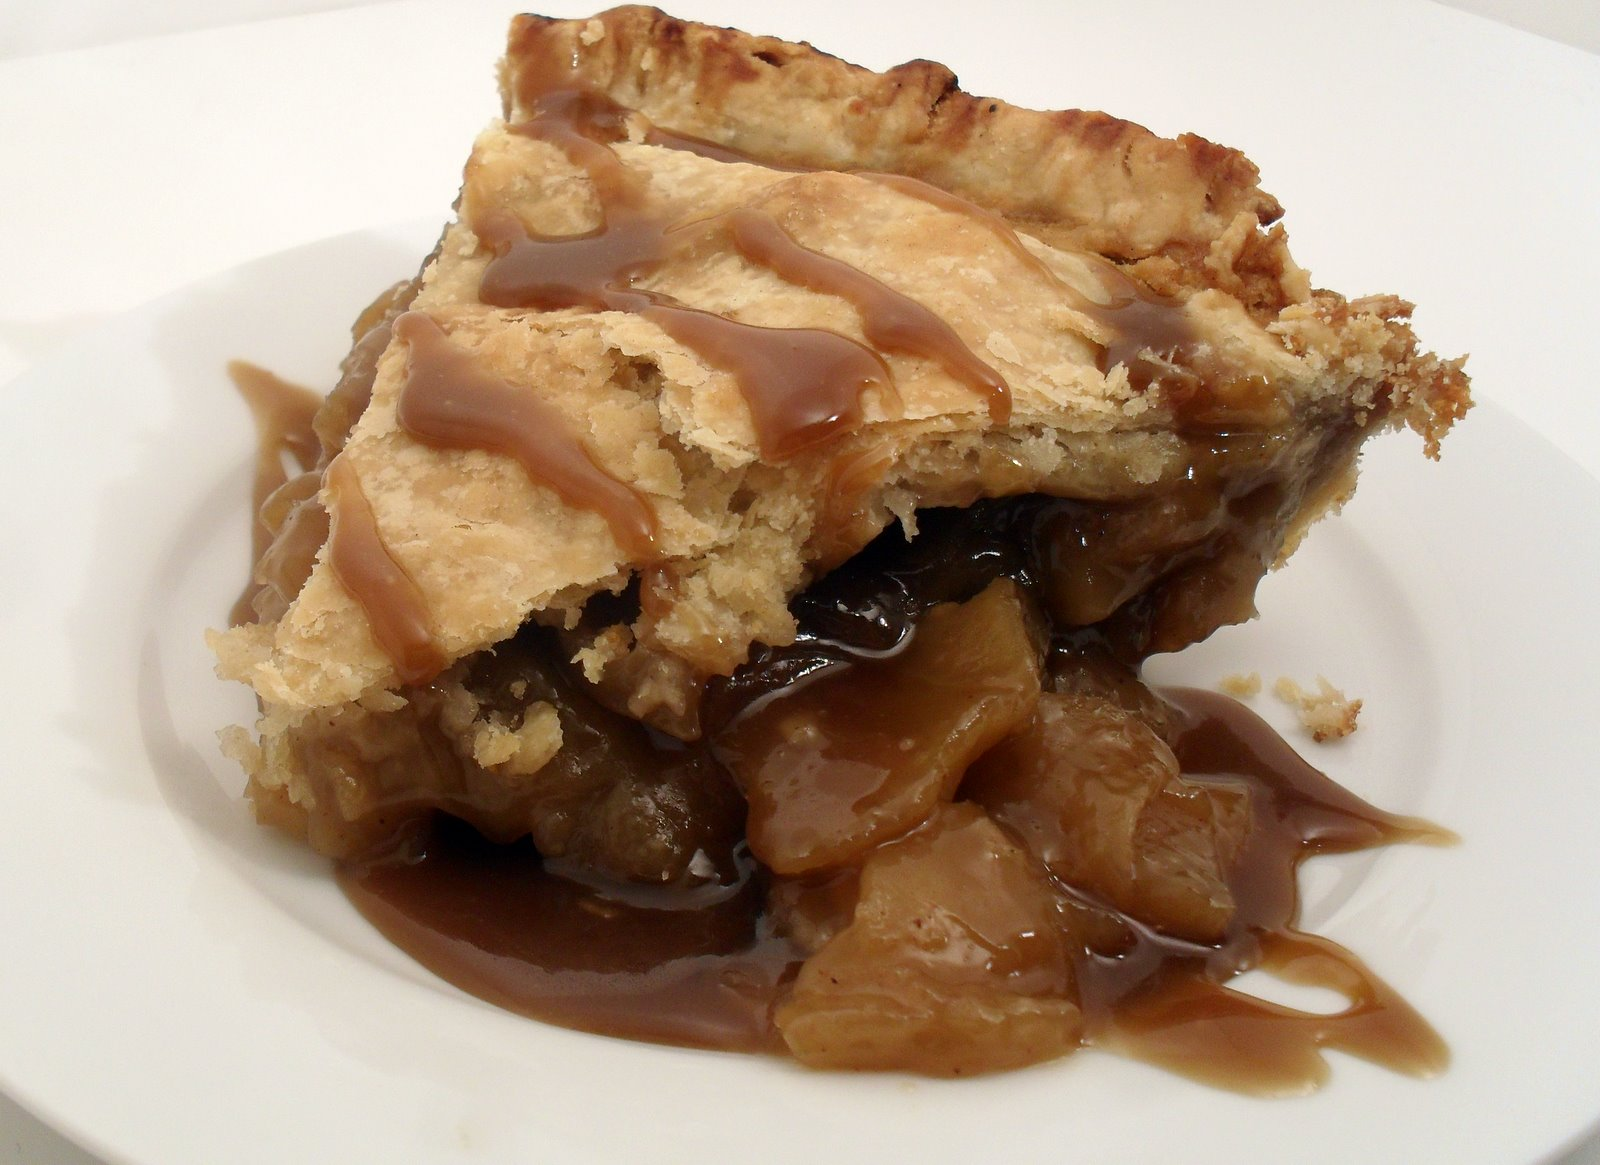 Dispensing Happiness: Caramel Apple Pie